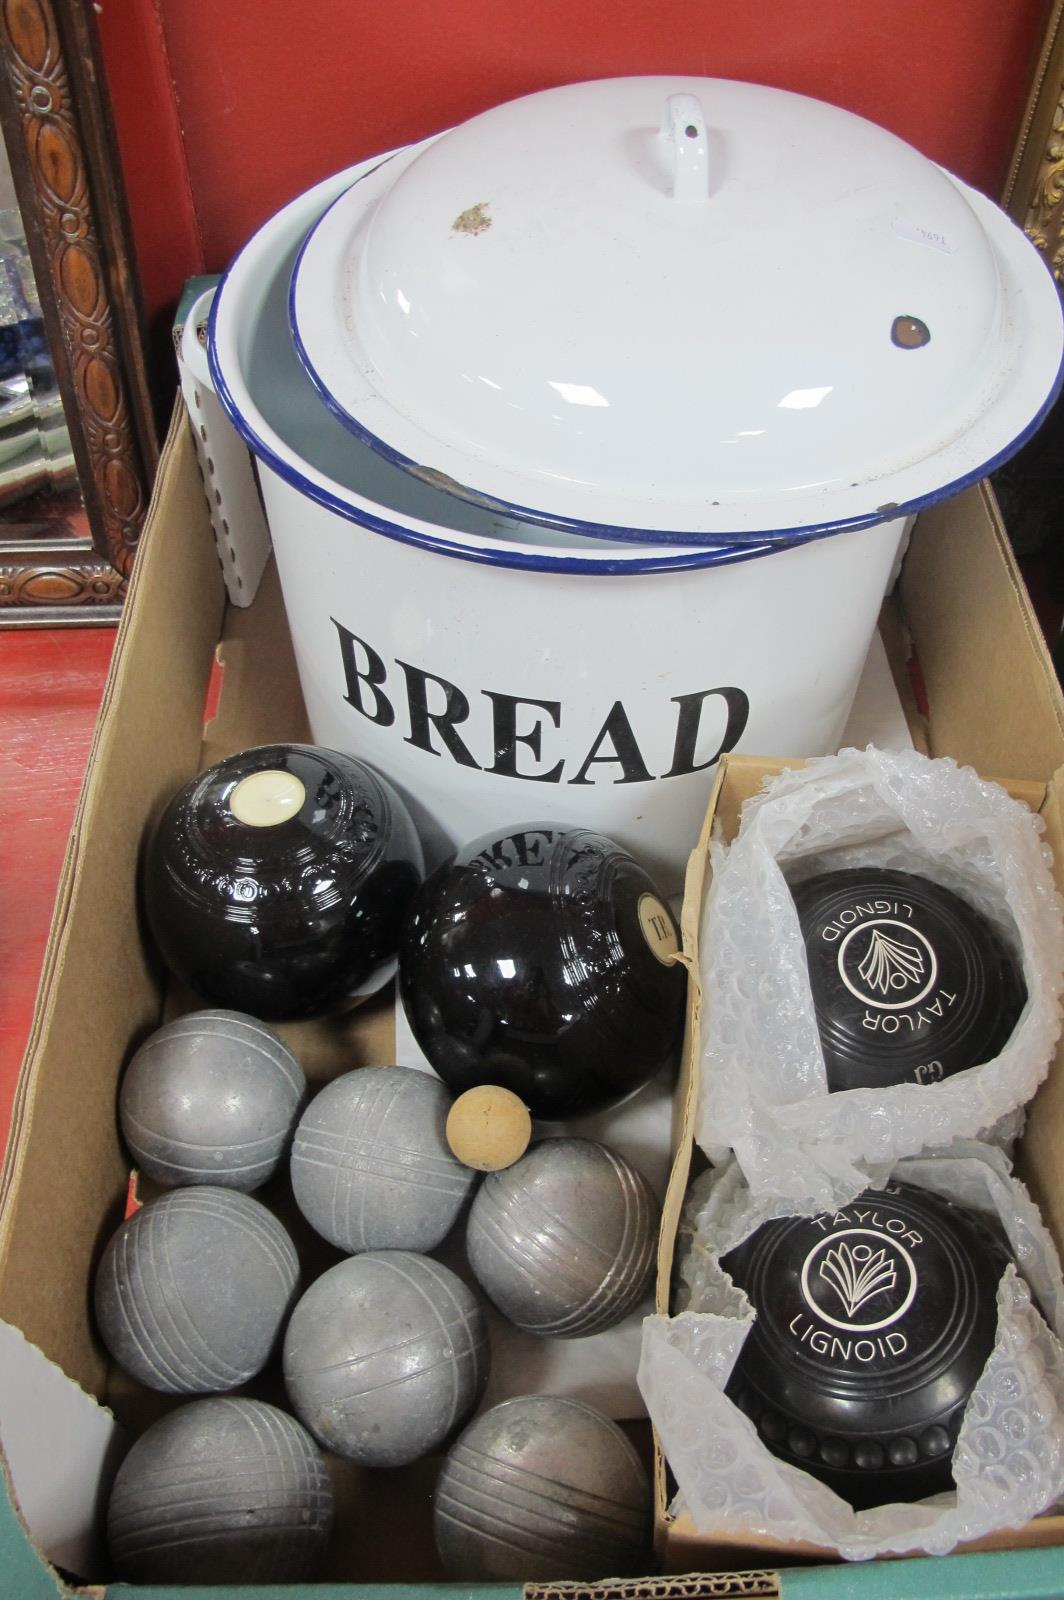 A White Enamel Bread Bin, together with Thomas Taylor crown green bowls, French bowls etc:- One